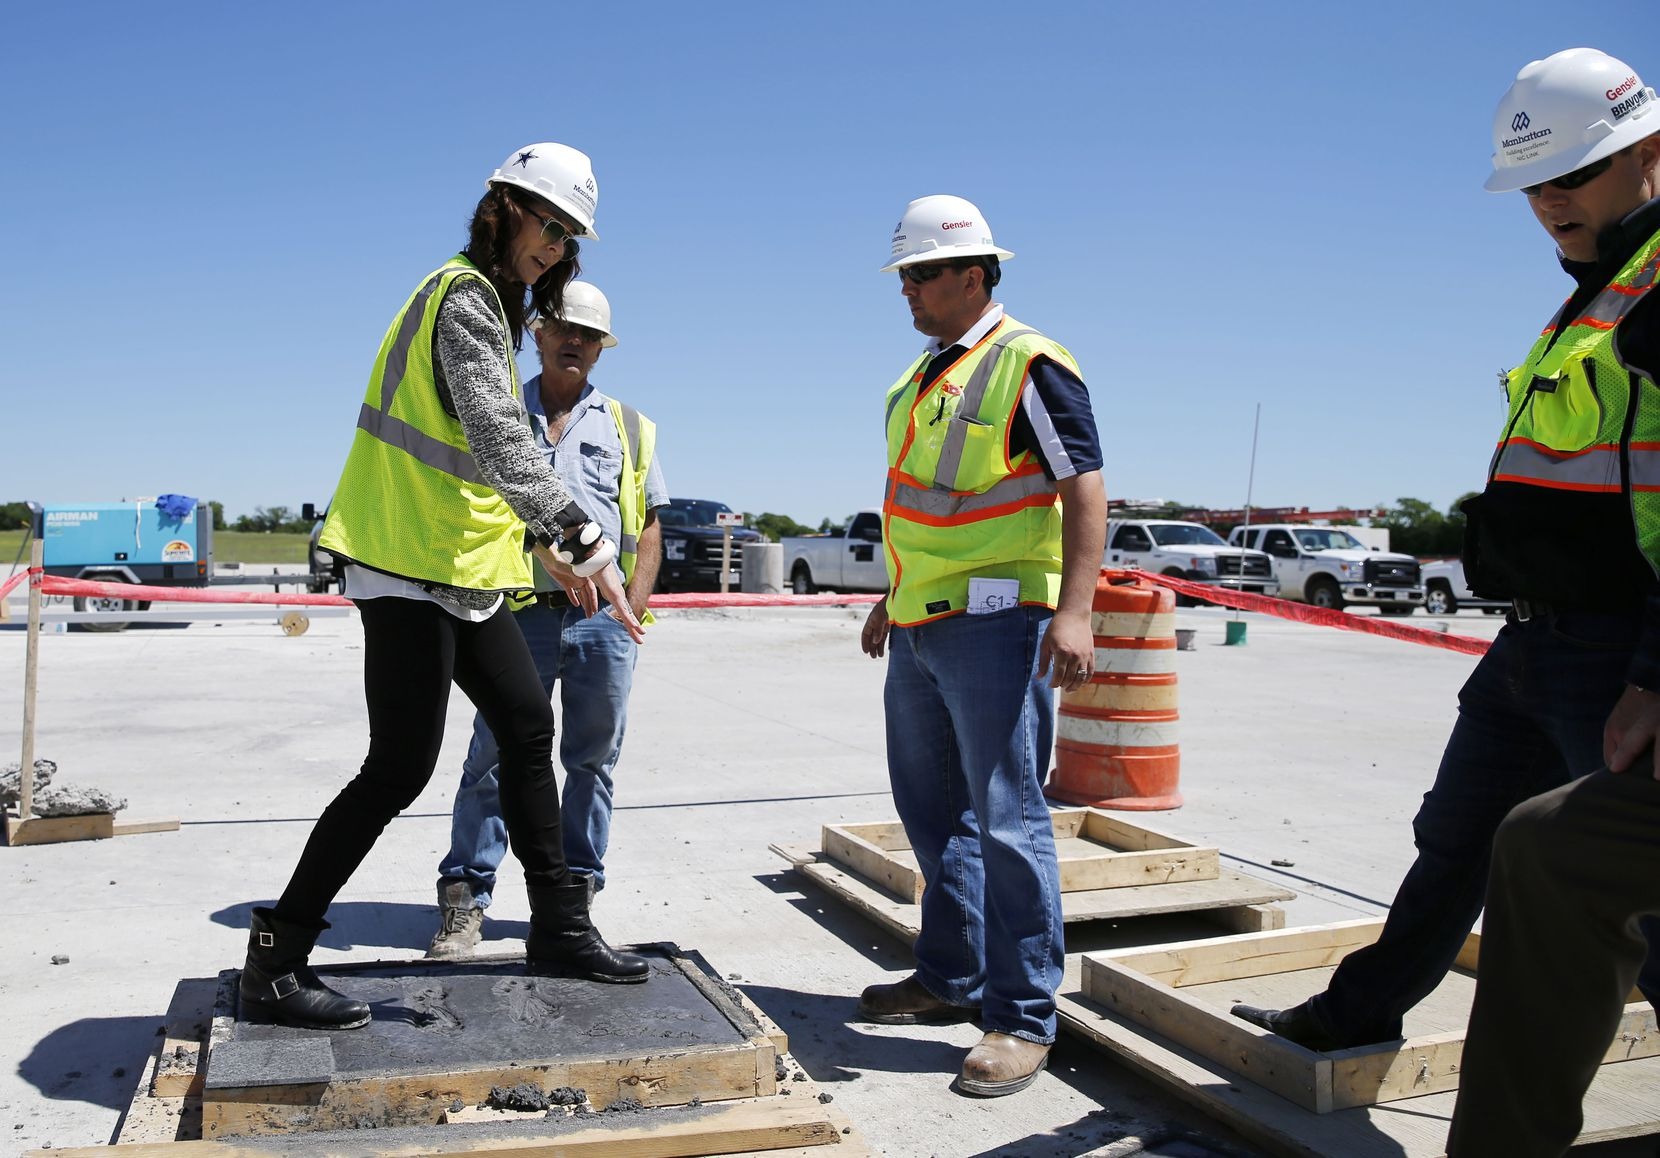 Charlotte Jones Anderson (left) Executive Vice President and Chief Brand Officer for the Dallas Cowboys attempts to replicate the stance of Roger Staubach as Andrew Pipkin, Superintendent at Metric Concrete, Brian Bethea (center, right), and Project Director Nicholas Link (far right), of Manhattan Construction Company watch in preparation for a foot imprinted Staubach and Drew Pearson press conference the next day at the Dallas Cowboys new headquarters at The Star in Frisco, on Tuesday, May 3, 2016. The Star a joint project with the City of Frisco is scheduled to open in August. (Vernon Bryant/The Dallas Morning News)